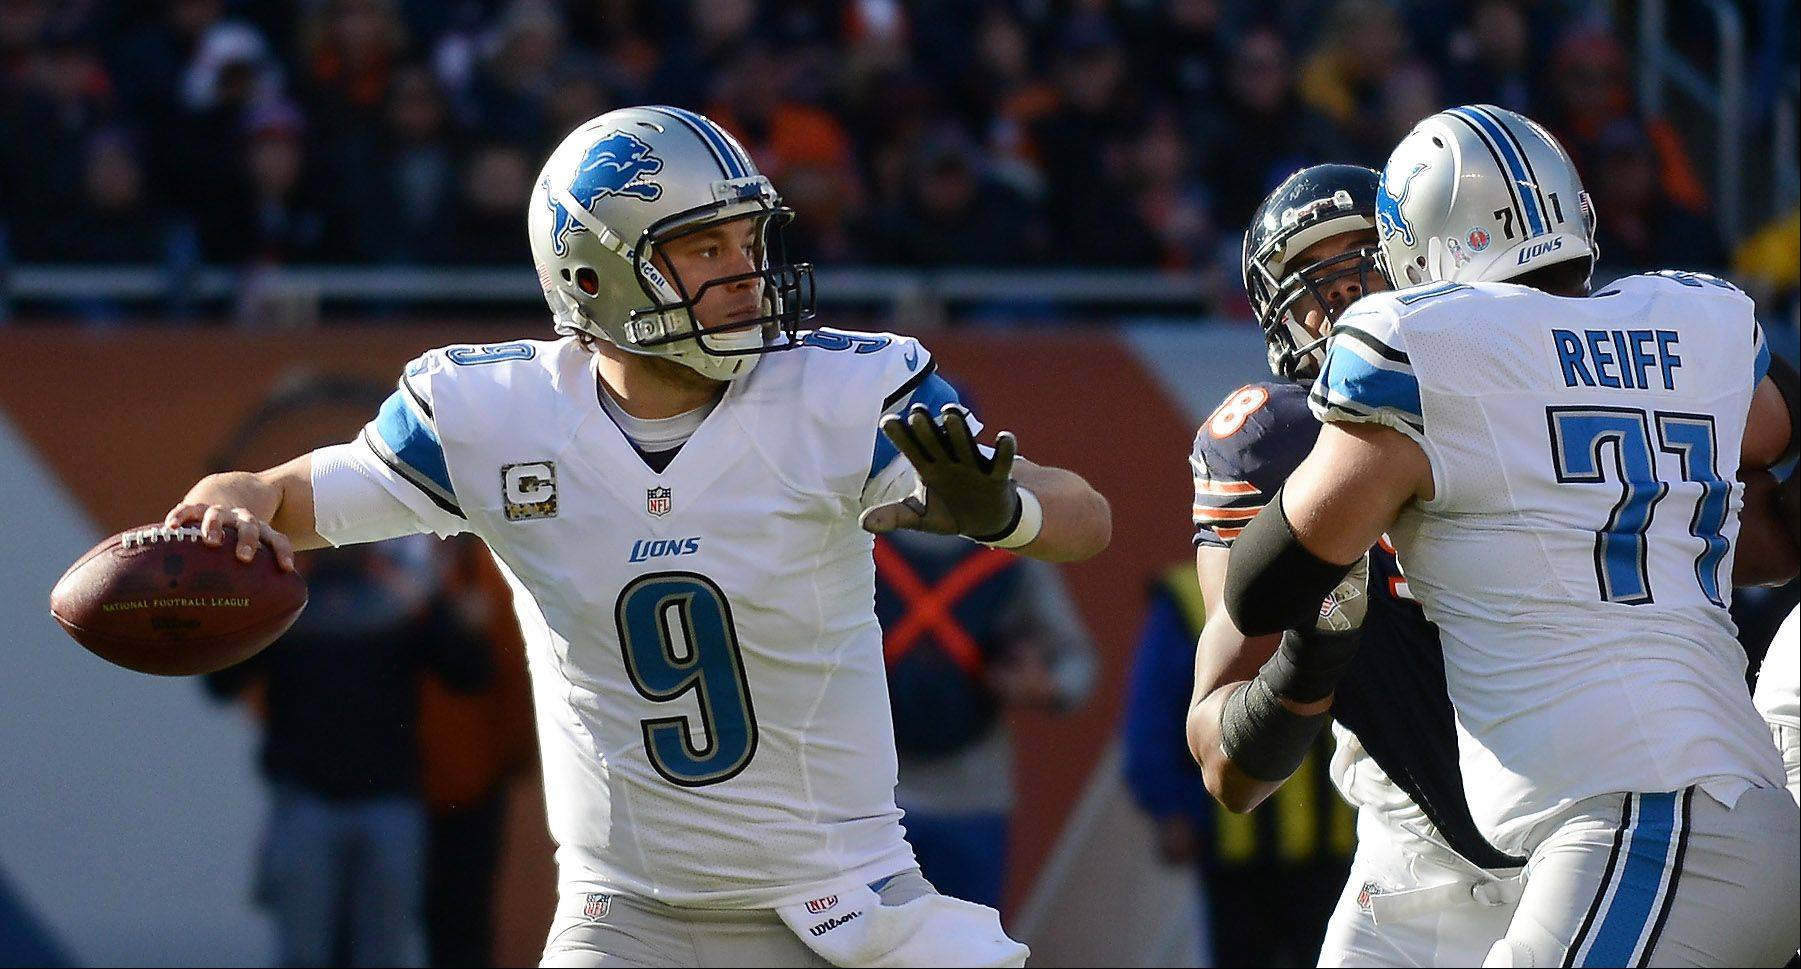 Detroit Lions quarterback Matthew Stafford (9) fires a pass during Sunday's game in Chicago.